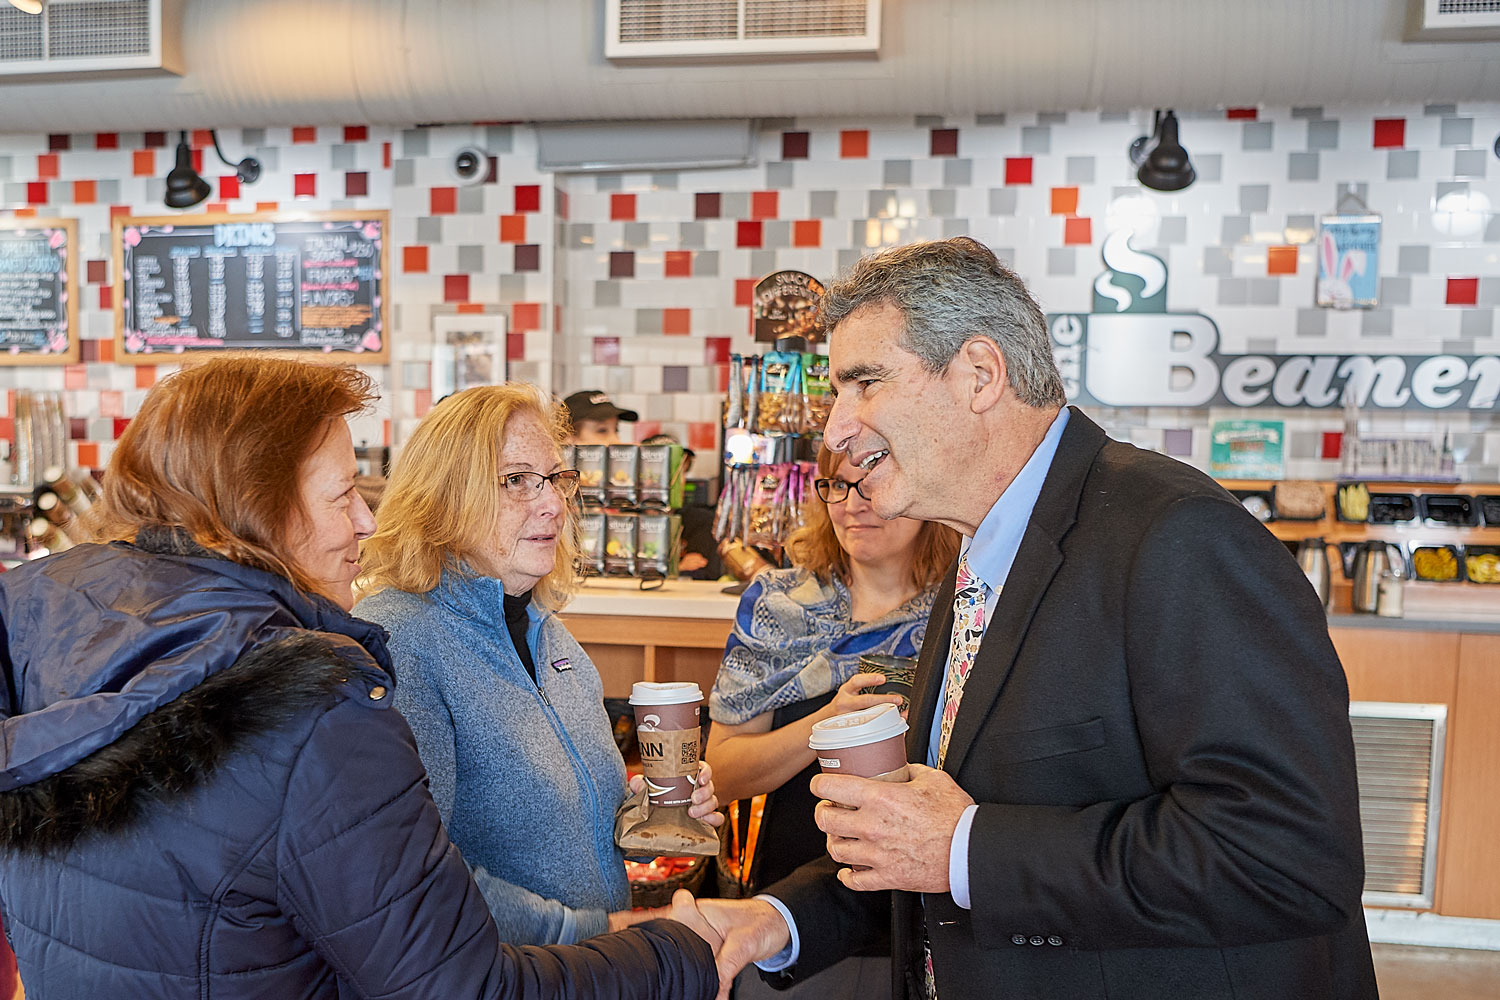 Thomas Katsouleas, president designate,meets faculty staff and students at the Beanery